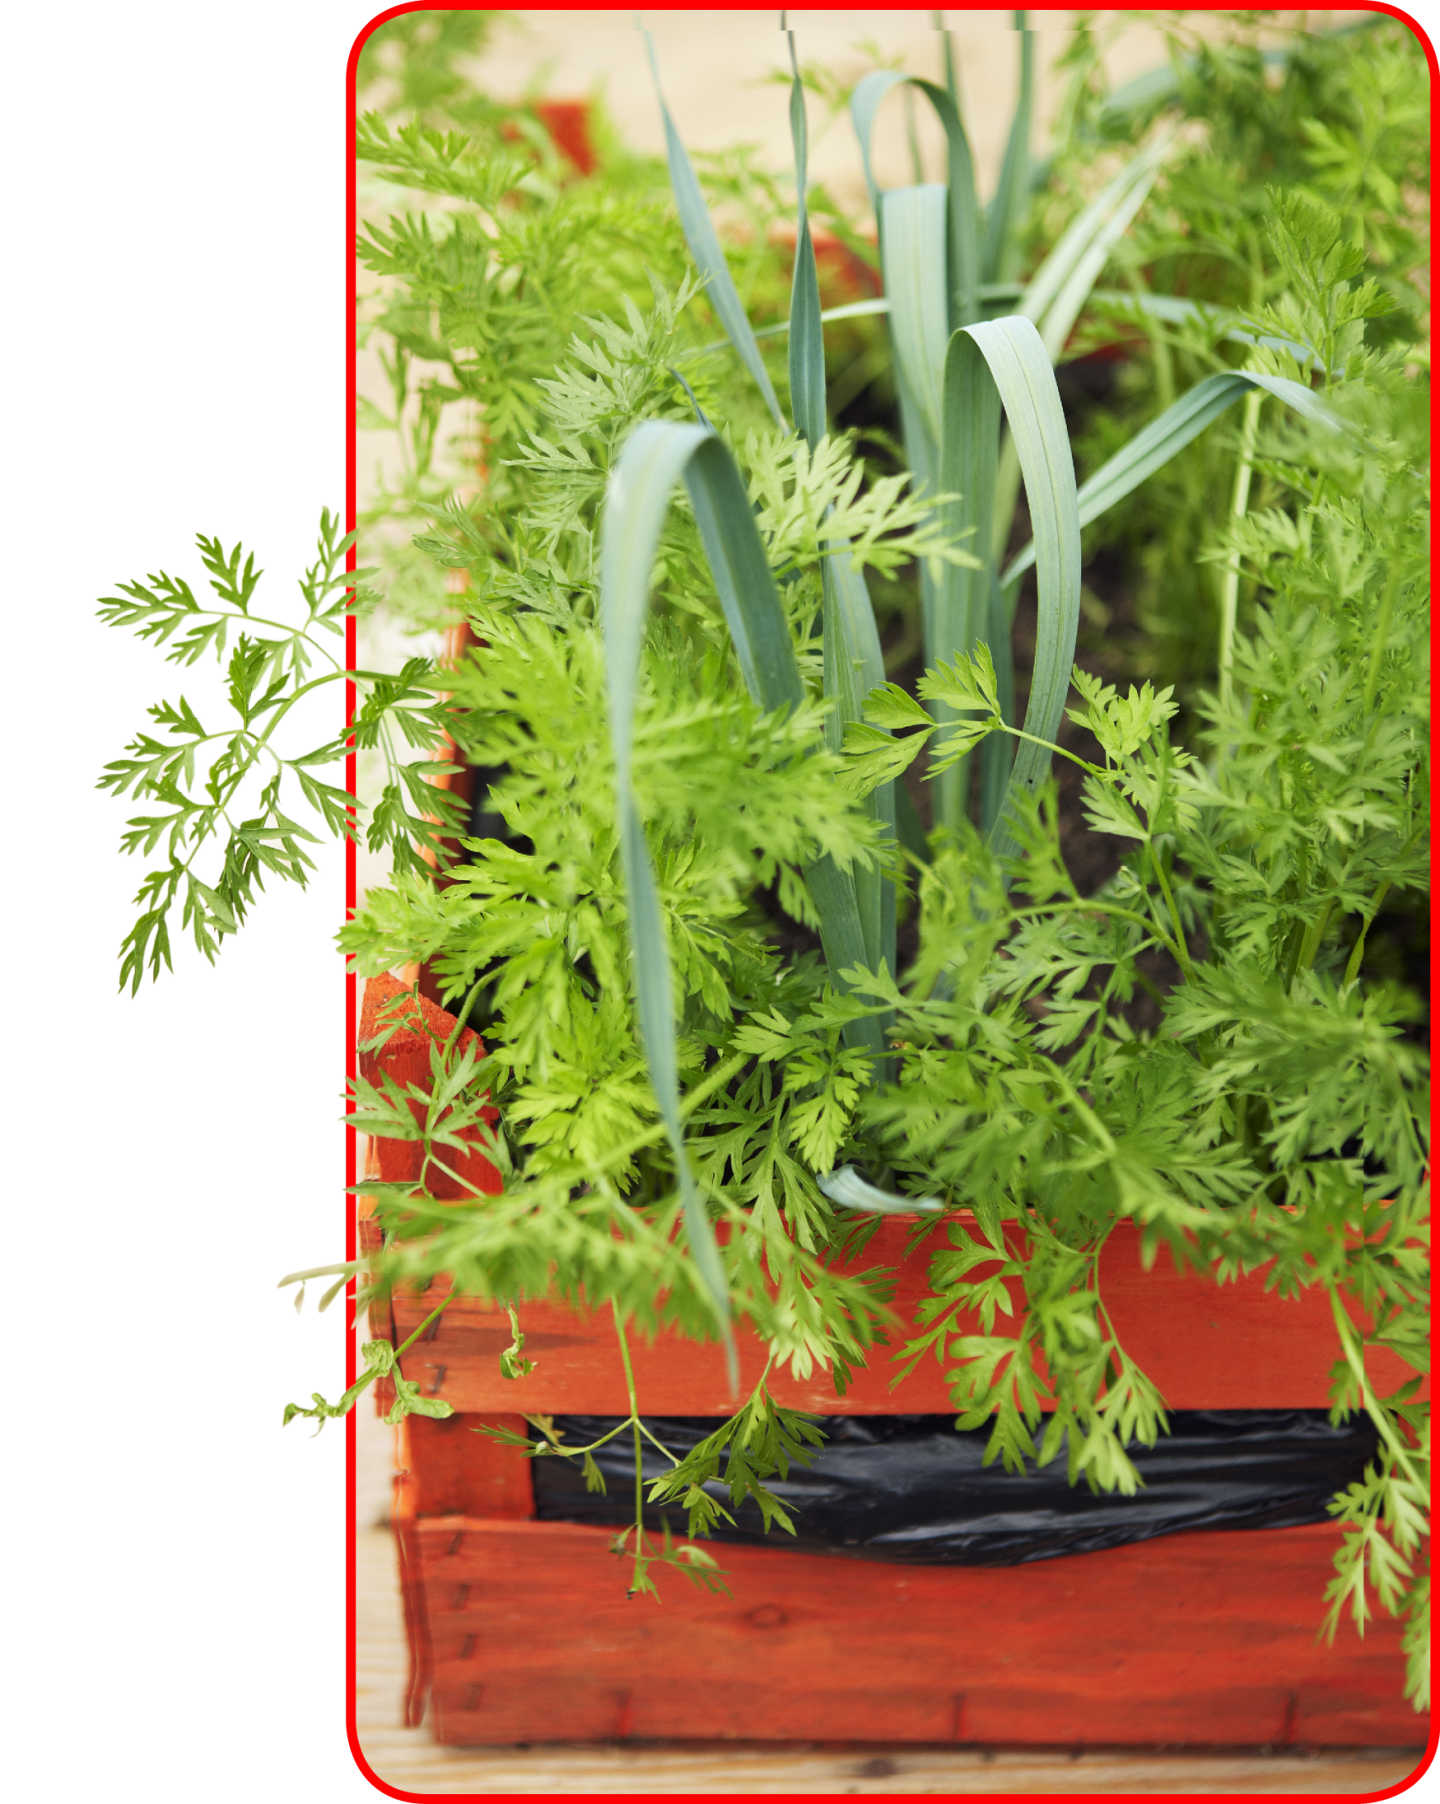 Awesome Grow Your Own Vegetables